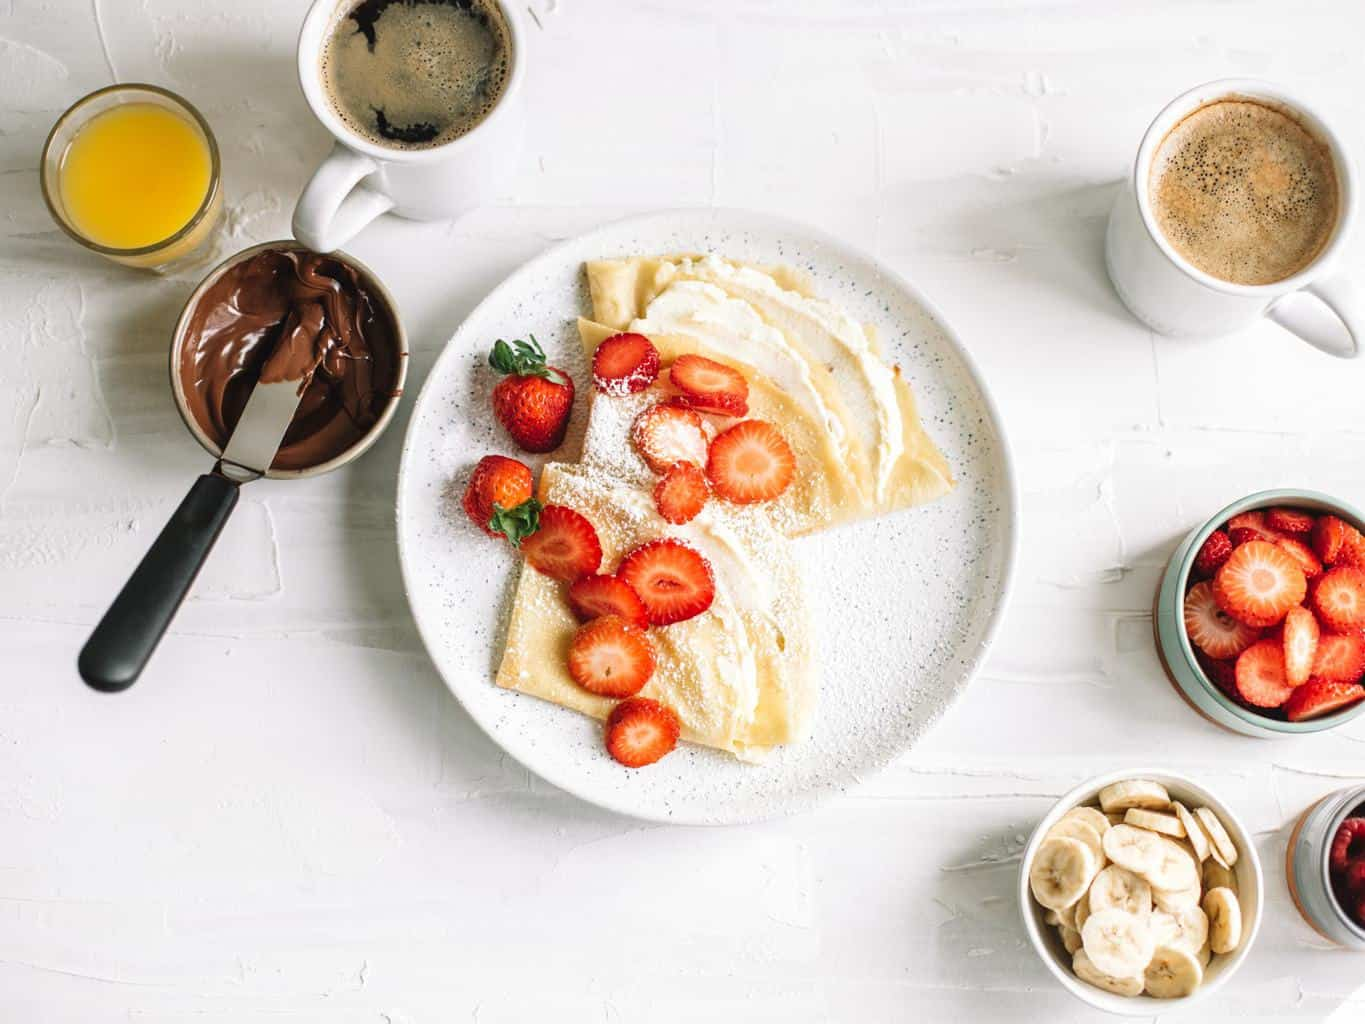 A plate of crepes with strawberries and sweet mascarpone filling